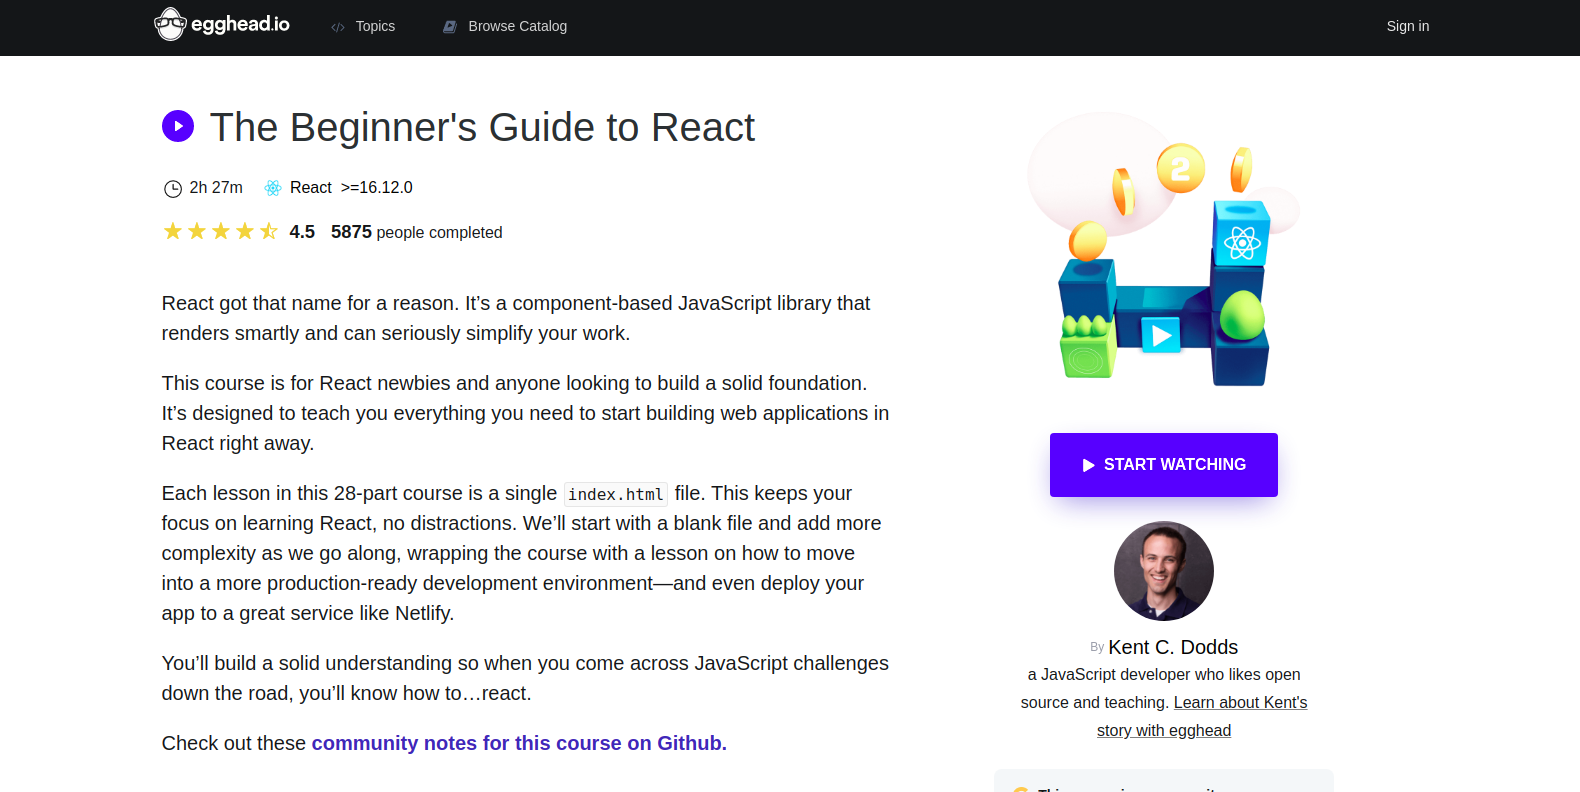 The Beginner's Guide to React intro page